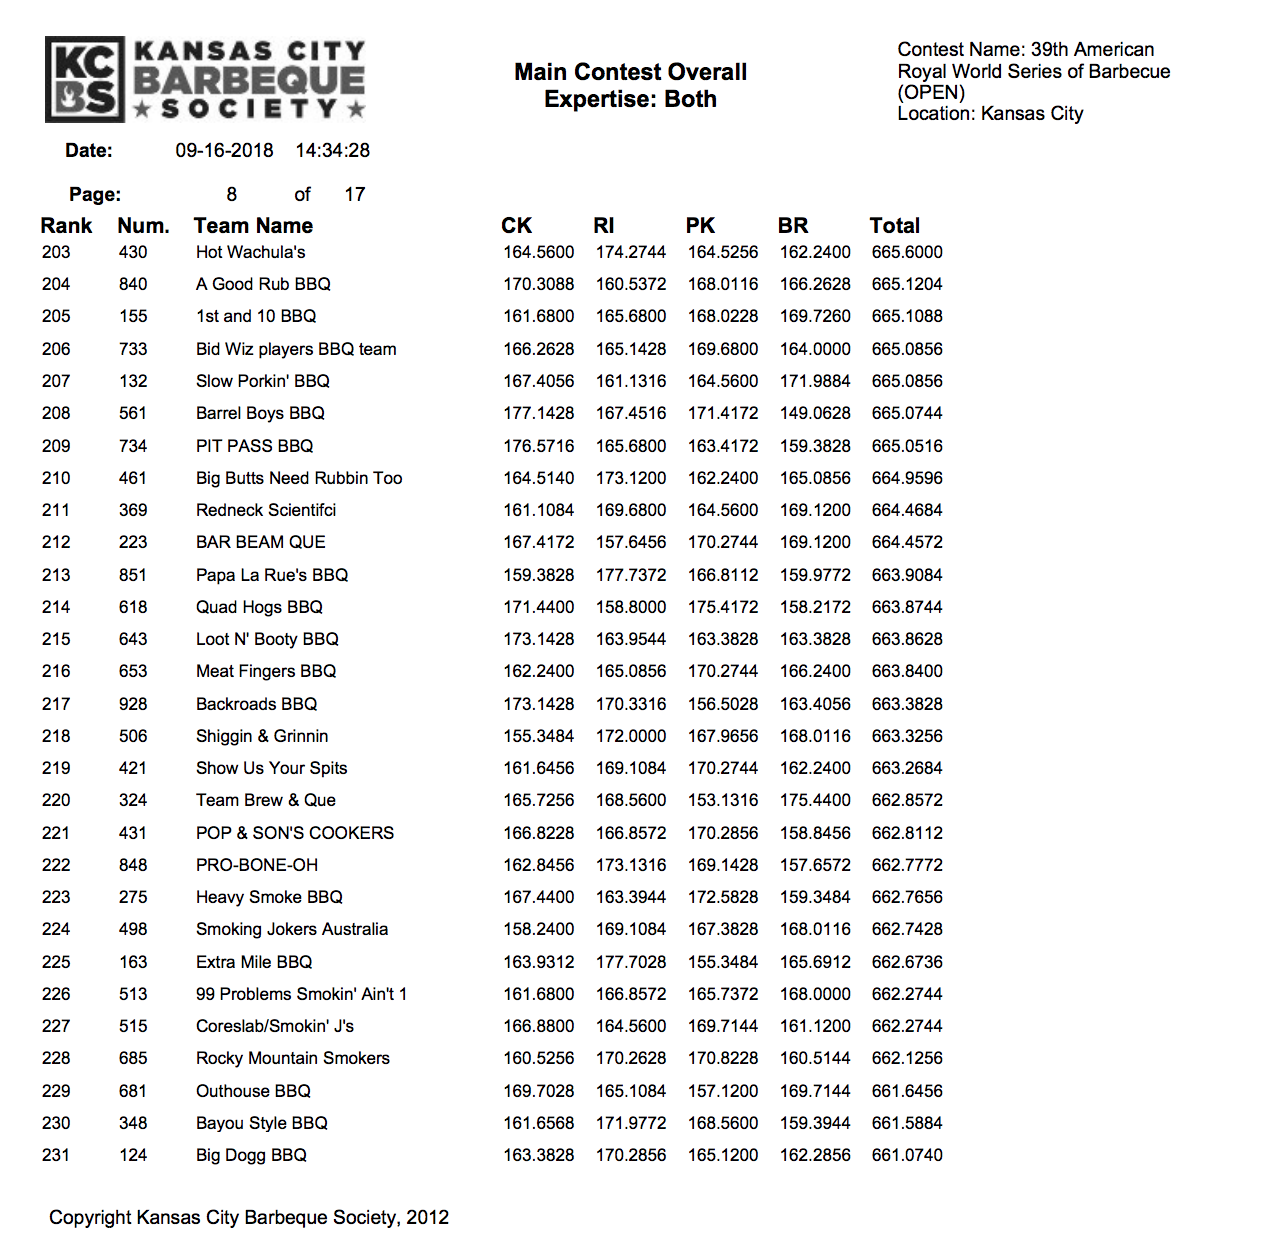 American Royal 2018 Results page 8